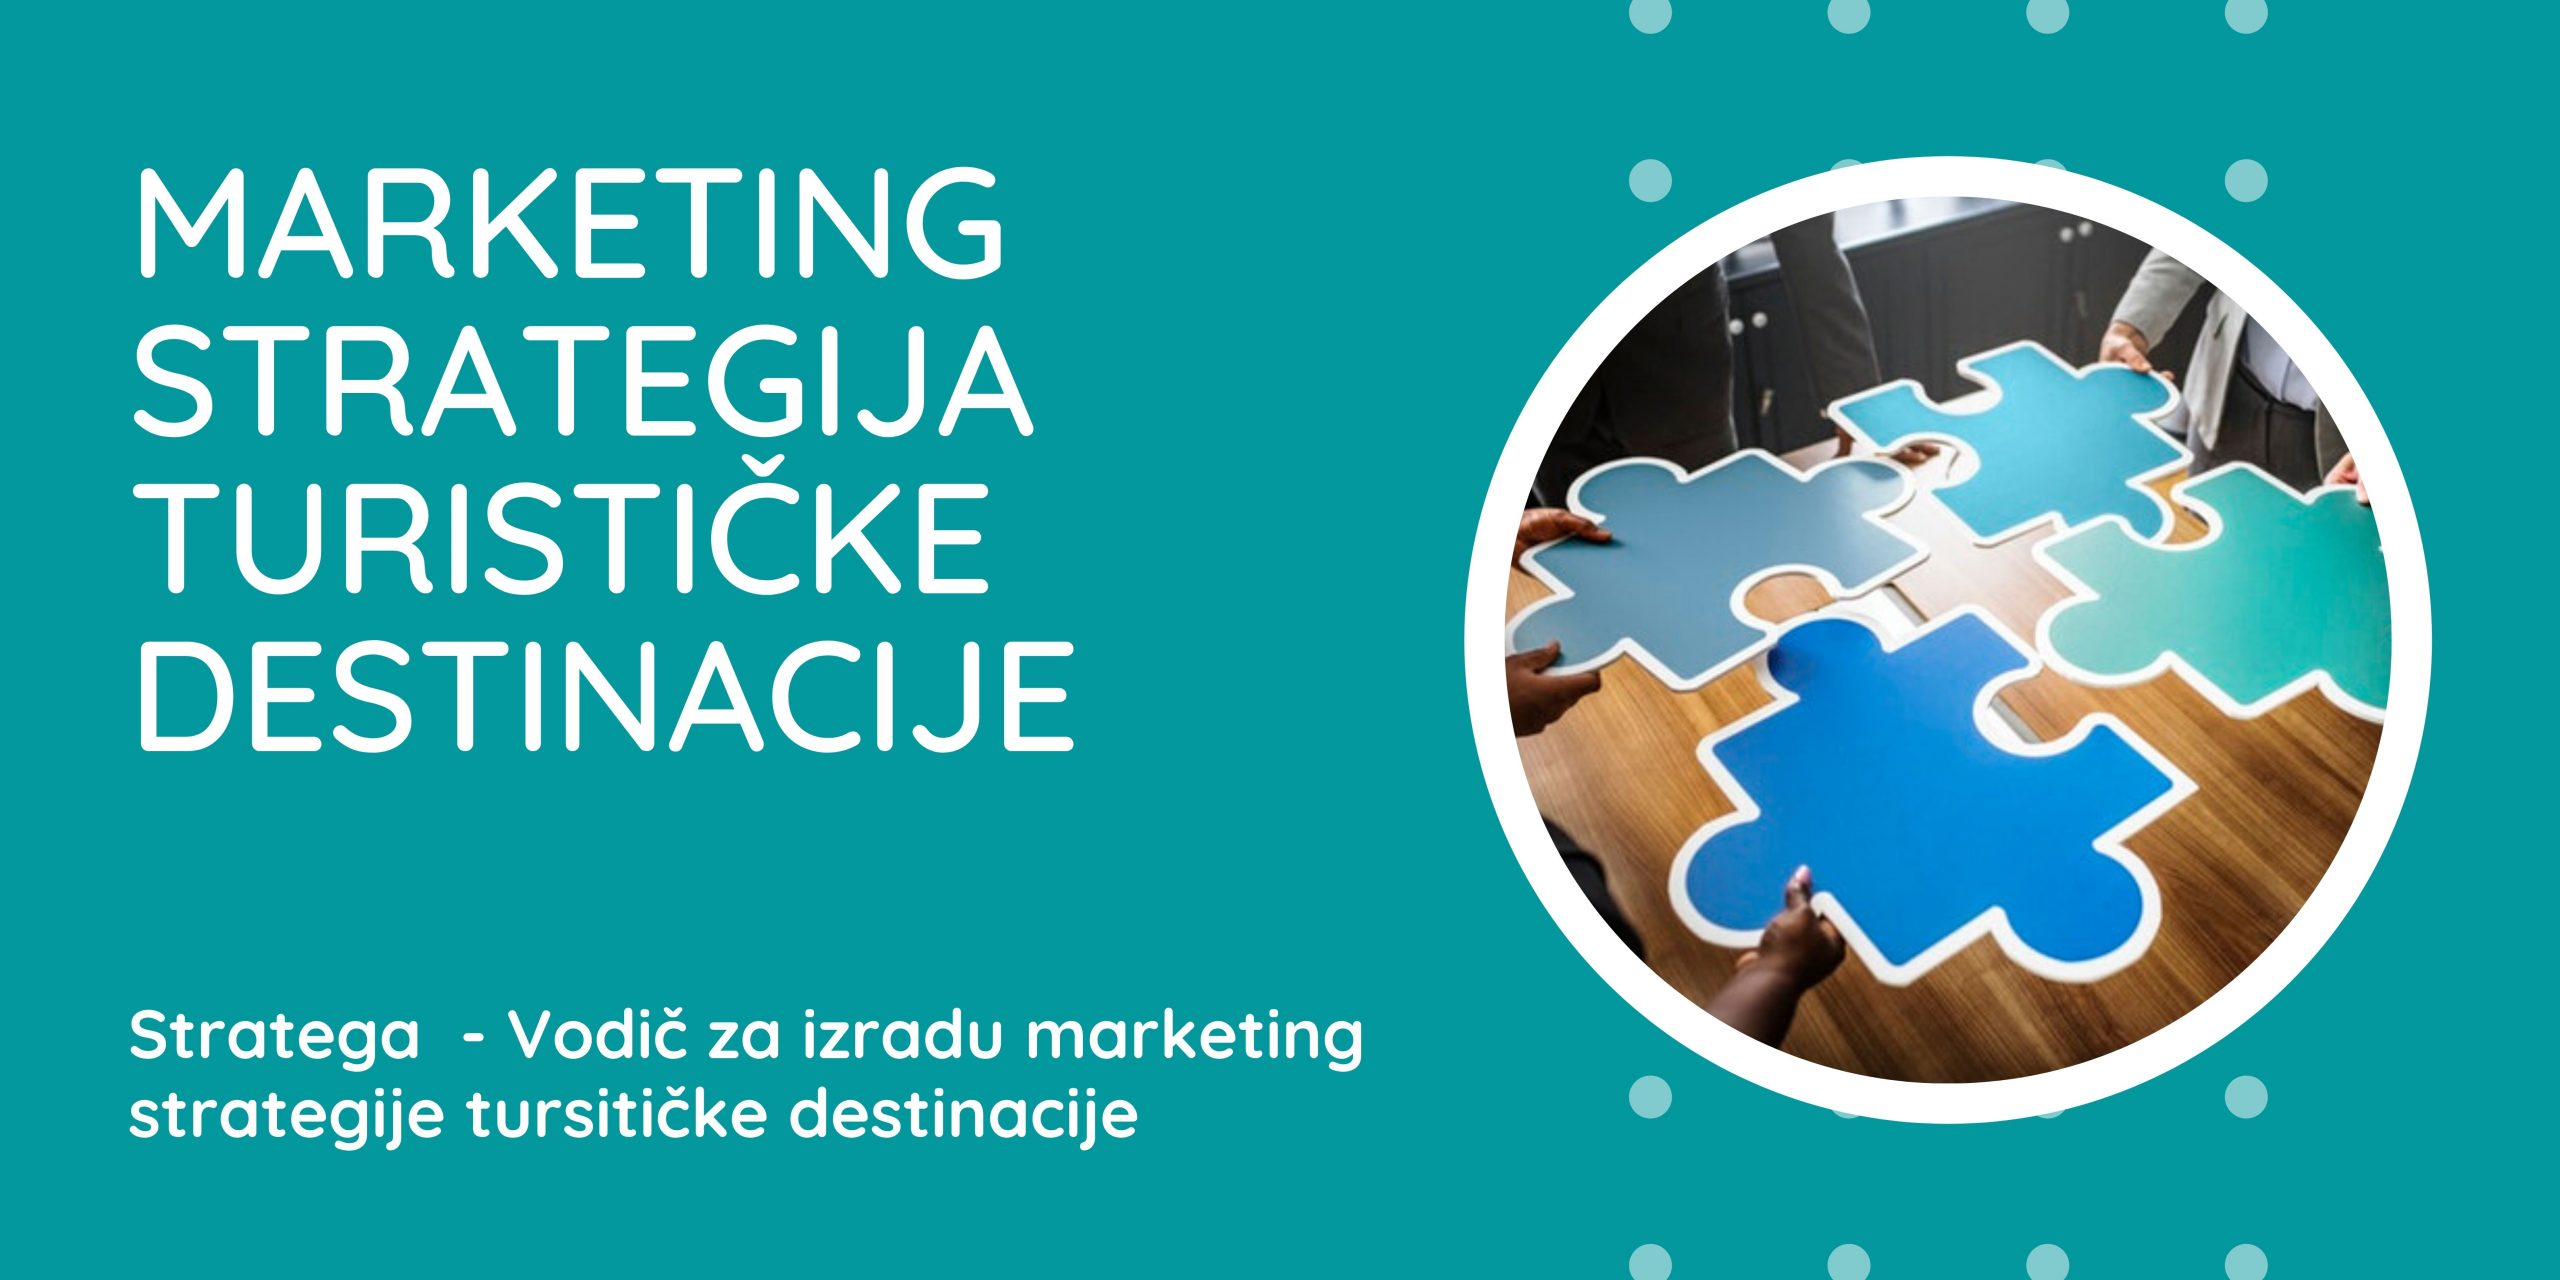 Vodič za kreiranje Marketing strategije turističke destinacije